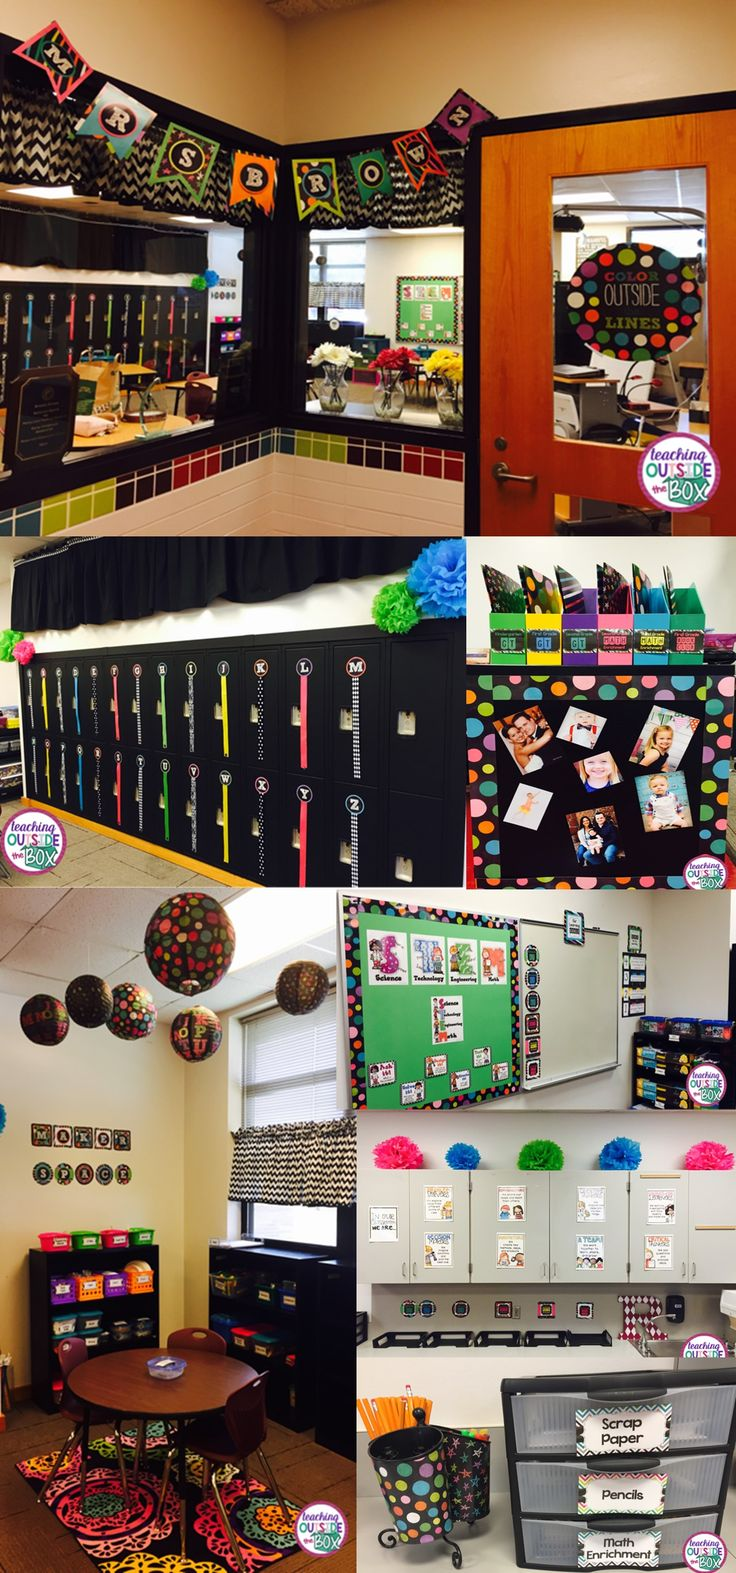 """Welcome to my """"Color me HAPPY"""" Place! Check out my complete classroom makeover and brand new Maker Space! Classroom Reveal 2015-16 